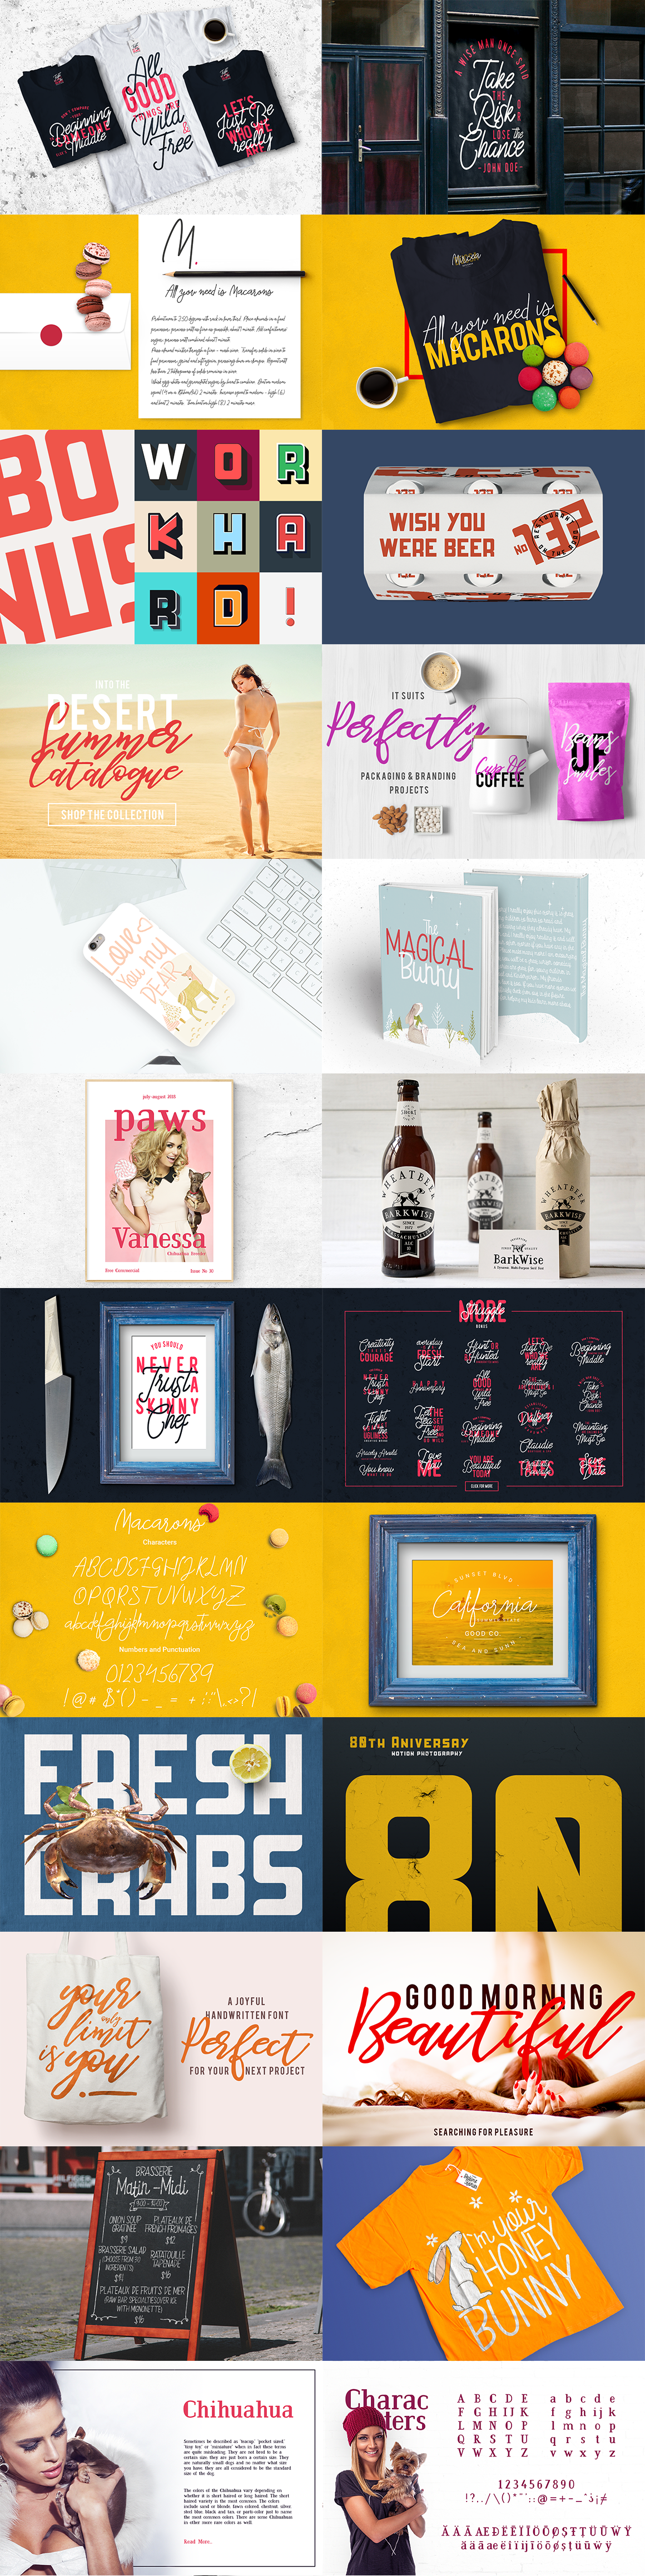 Dope Fonts - 6 Awesome Fonts in a Bundle Deal - fullpreview